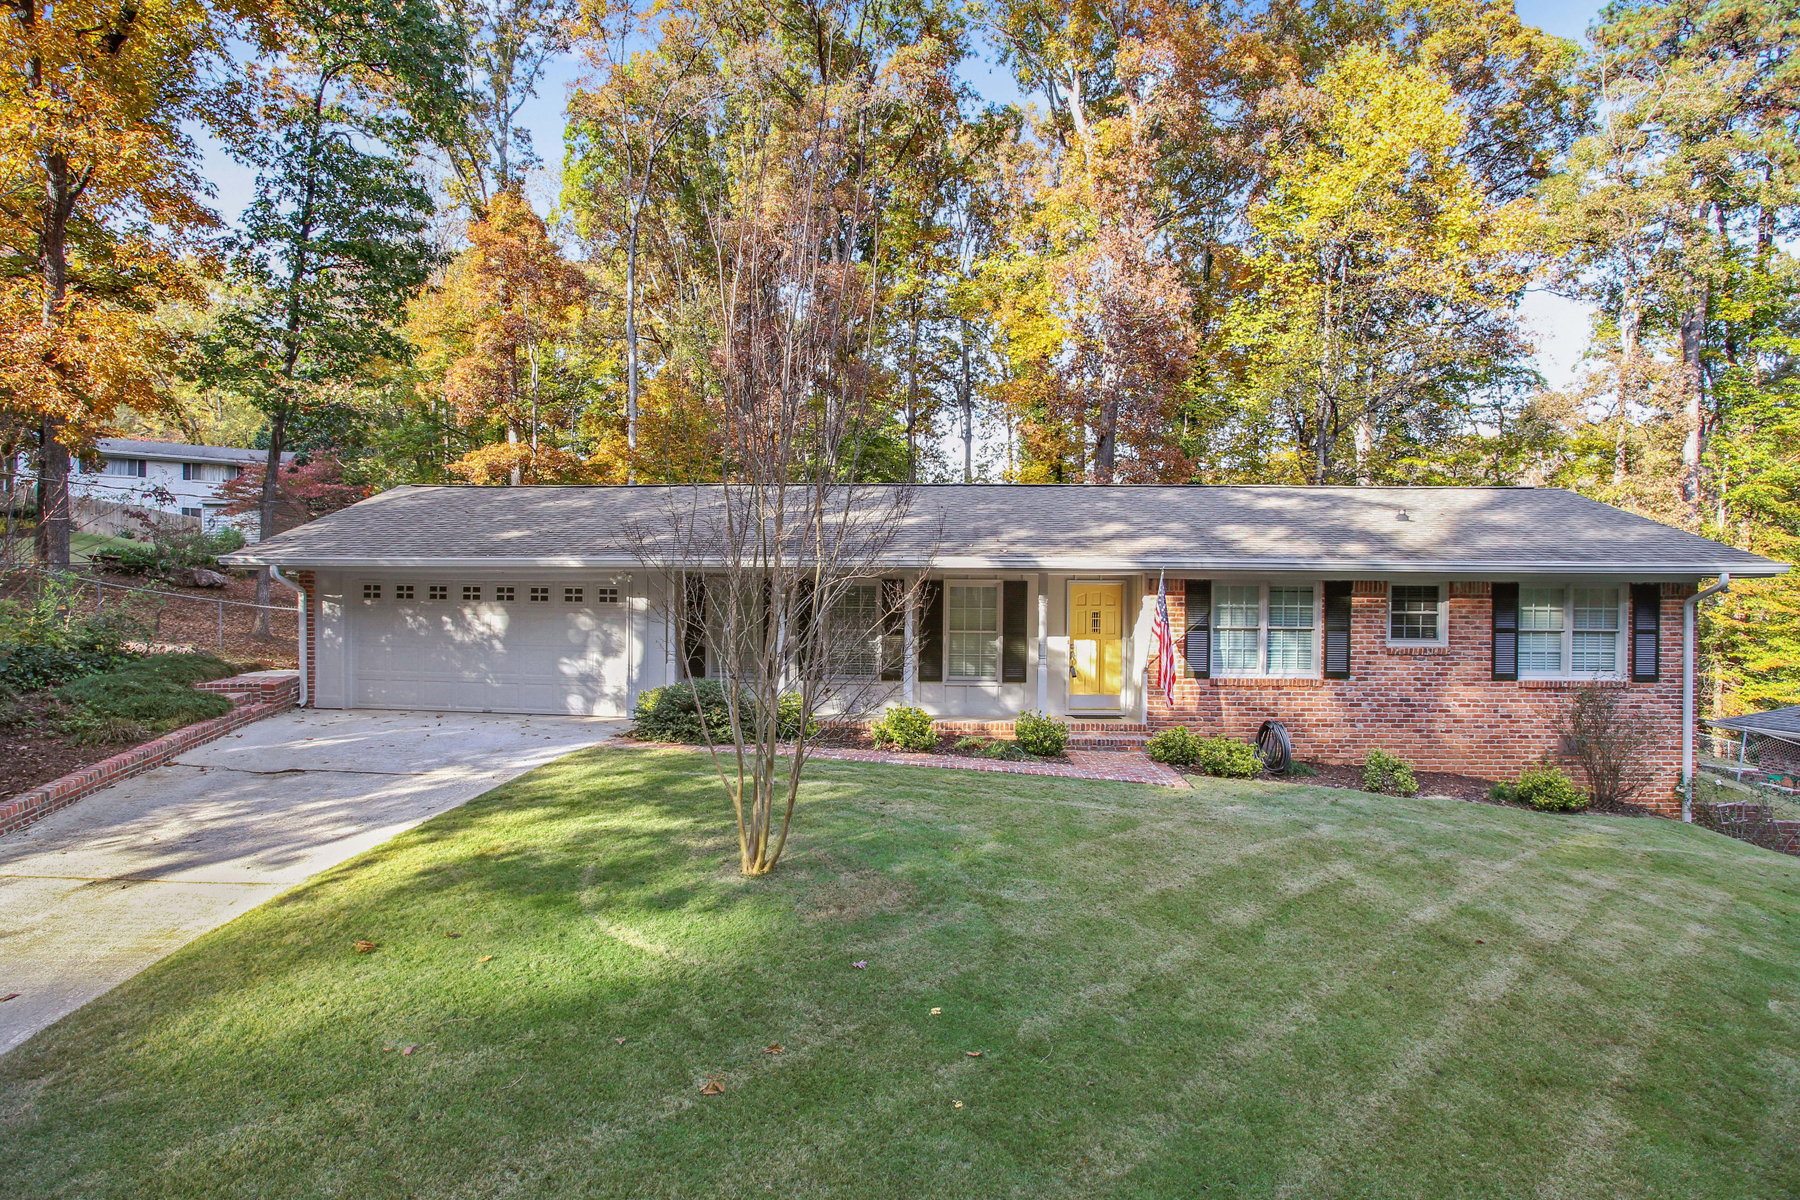 Single Family Home for Sale at One Level Charmer 2264 Winding Way Tucker, Georgia 30084 United States